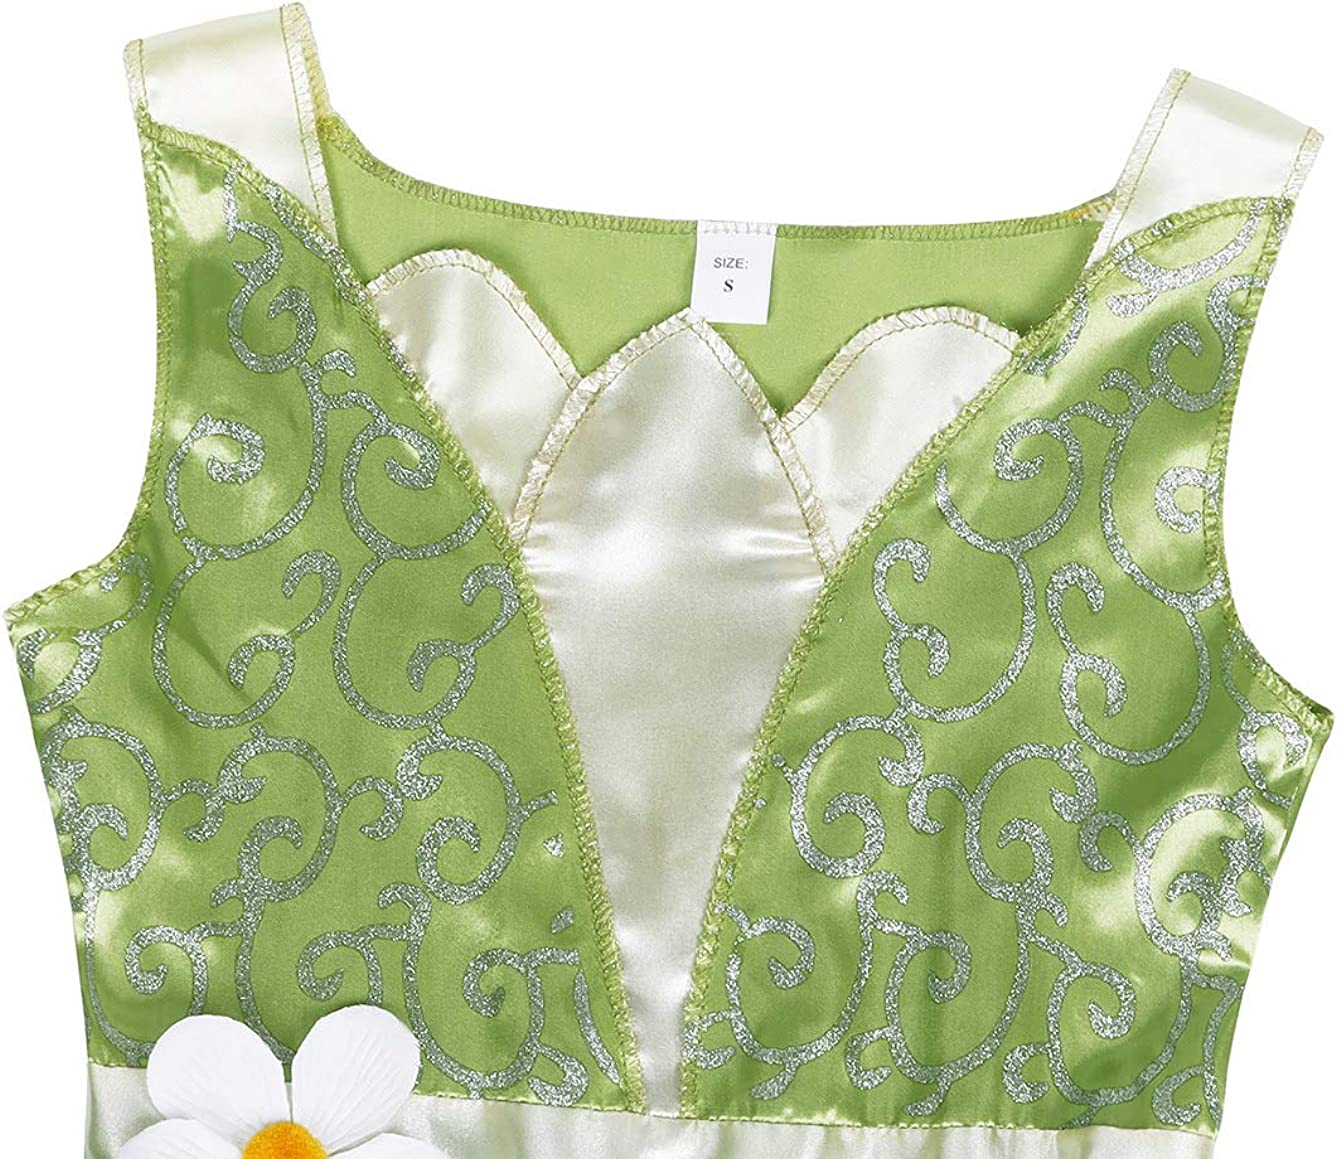 Cotrio Kids Girls Green Fairy Tale Princess Dress Birthday Party Fancy Dresses Halloween Costume Outfits 3-8 Years